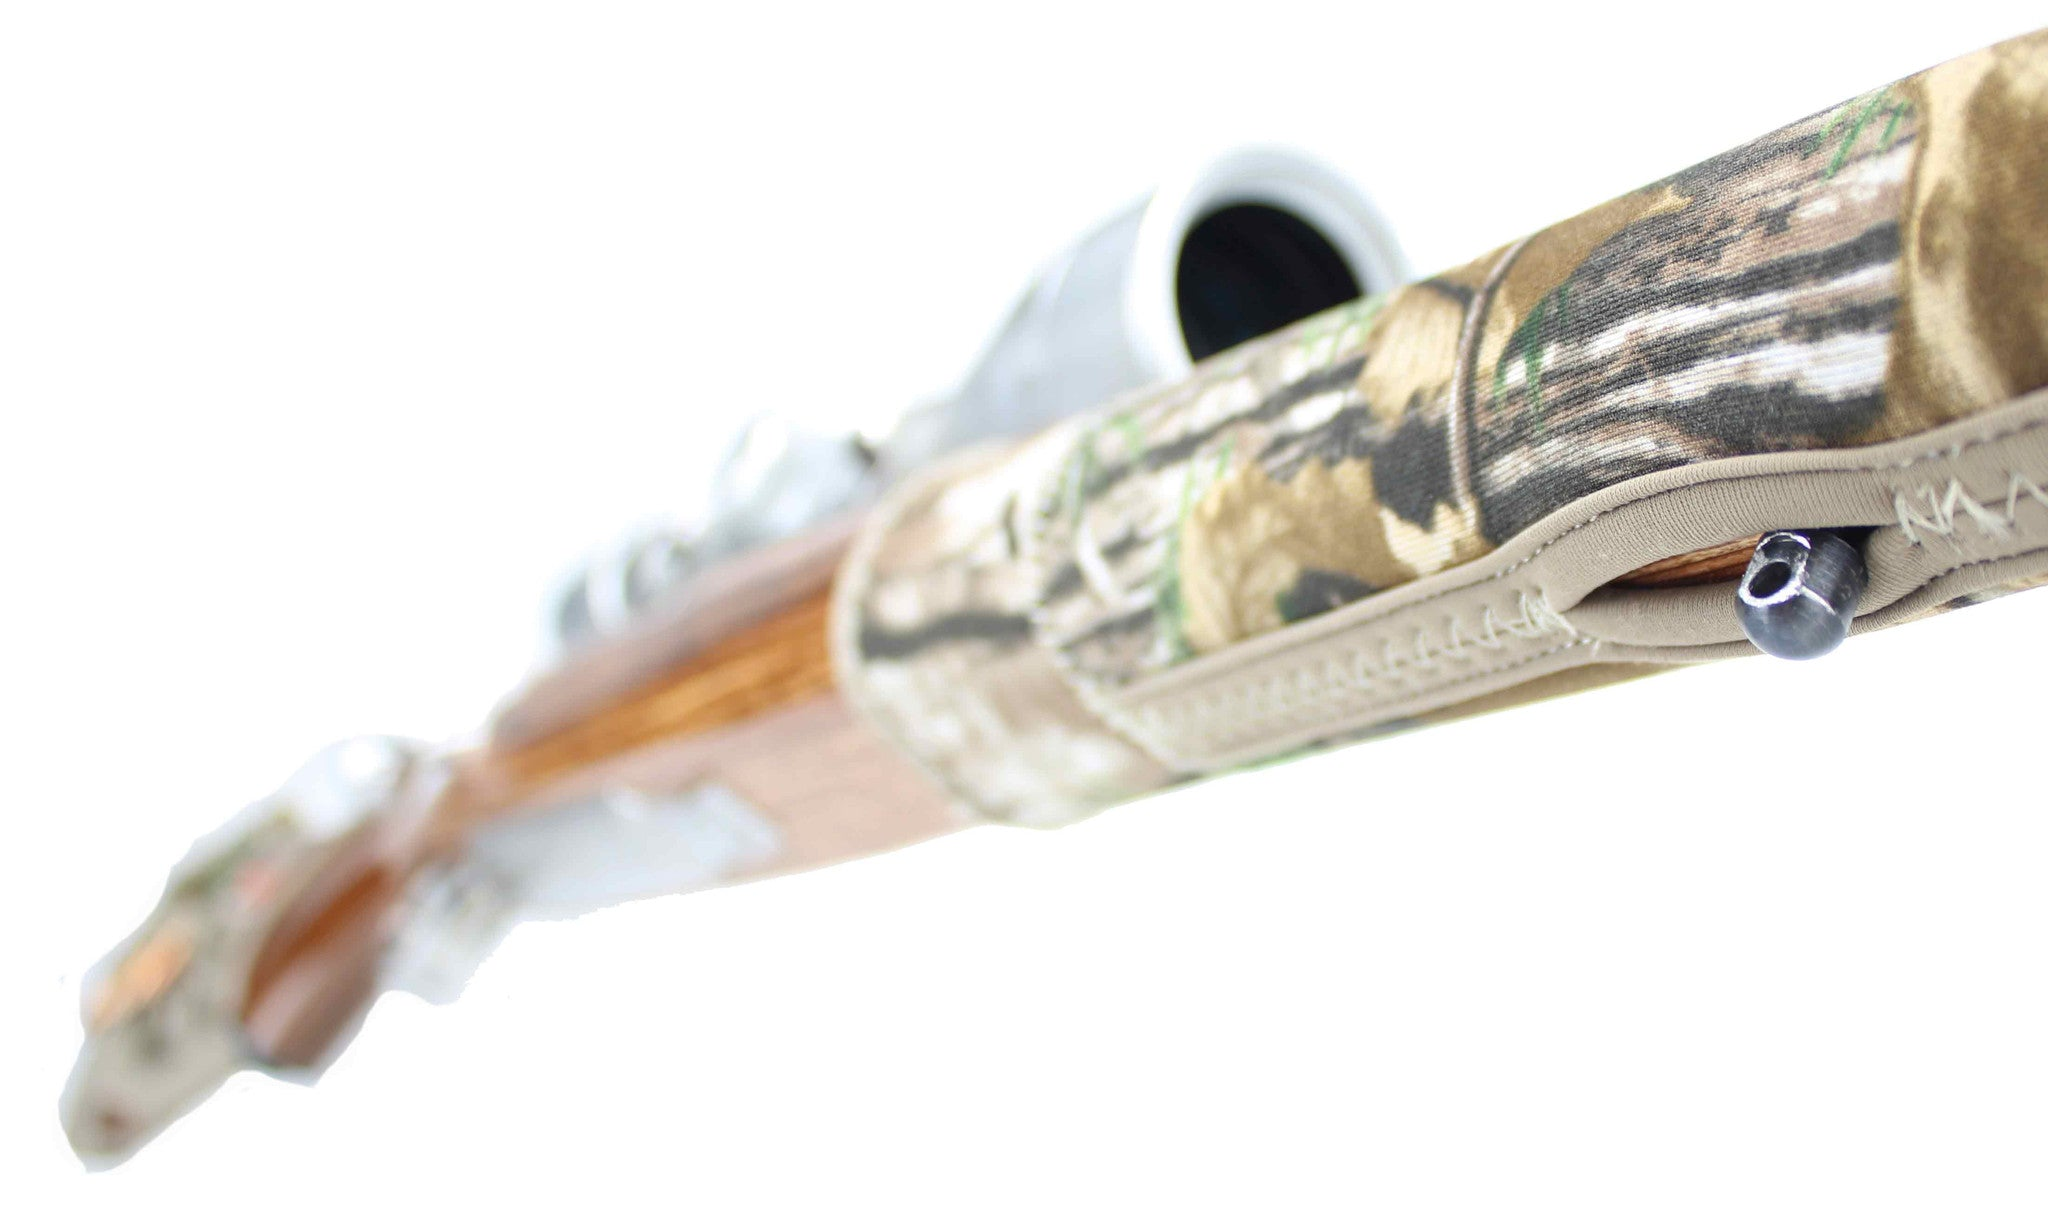 2-PIECE KIT - Rifle Model in Realtree Xtra